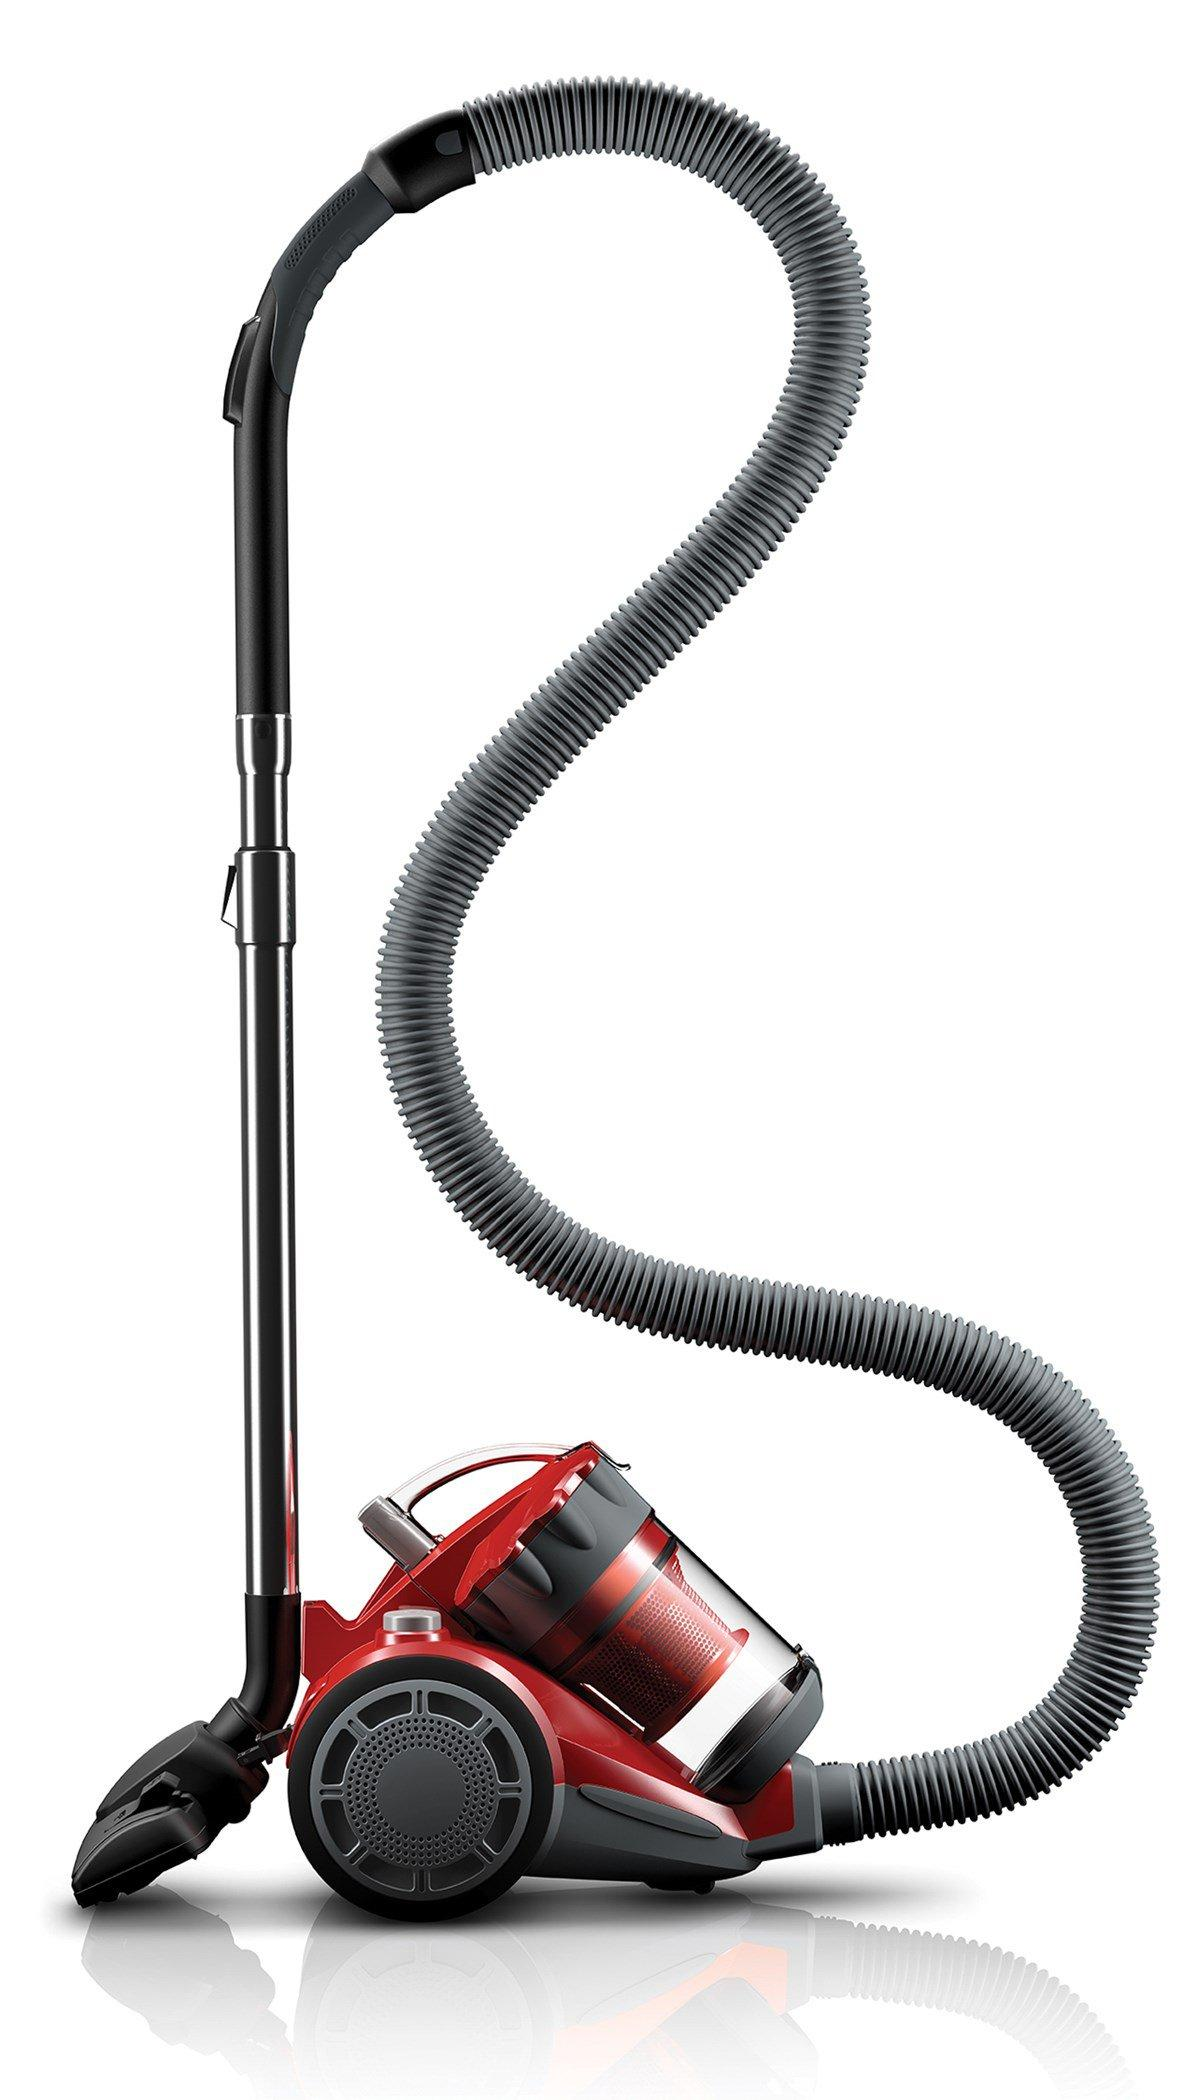 Featherlite Lightweight Cyclonic Canister Vacuum1